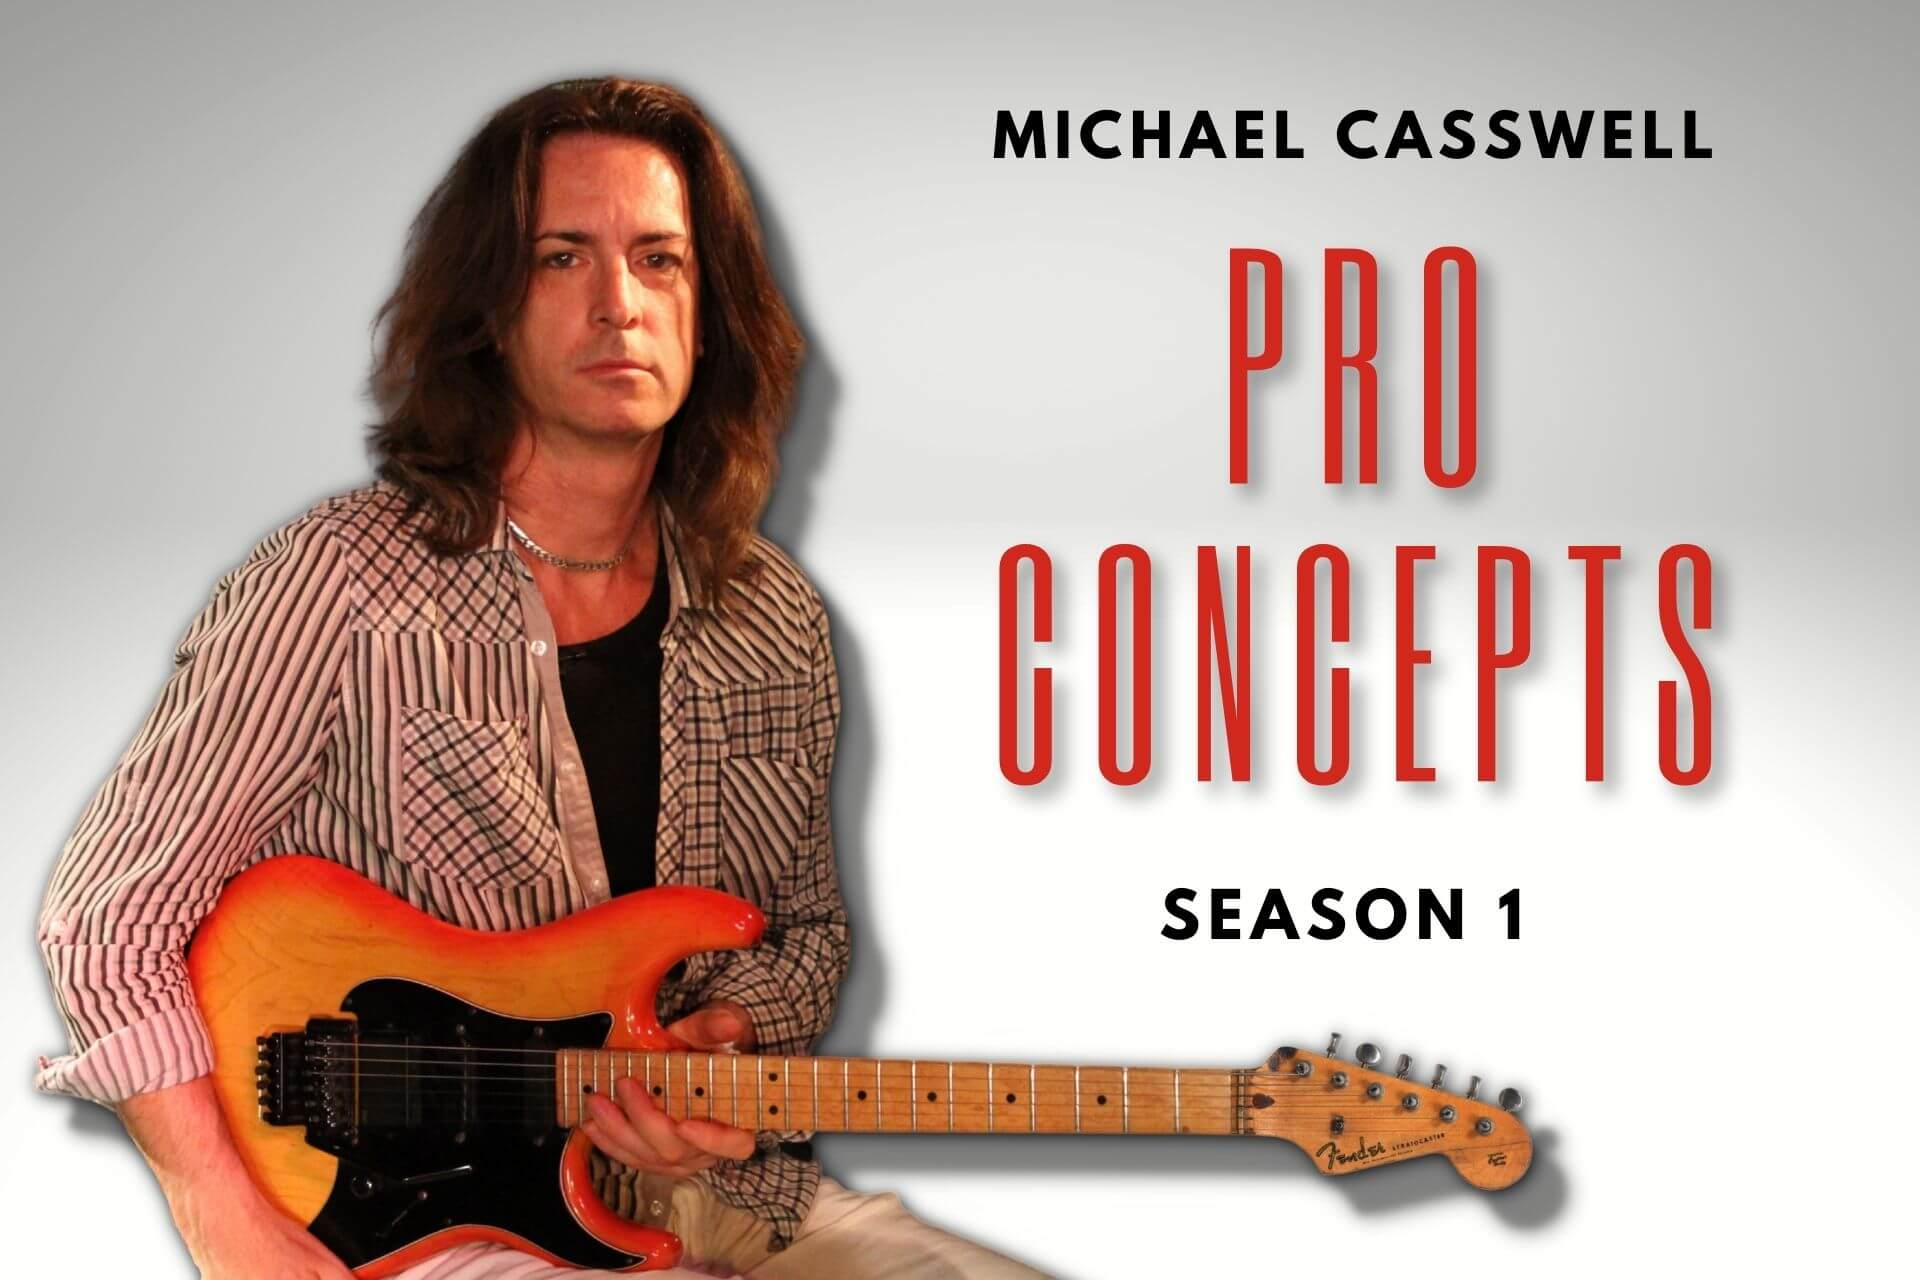 Michael Casswell - Pro Concepts Season 1